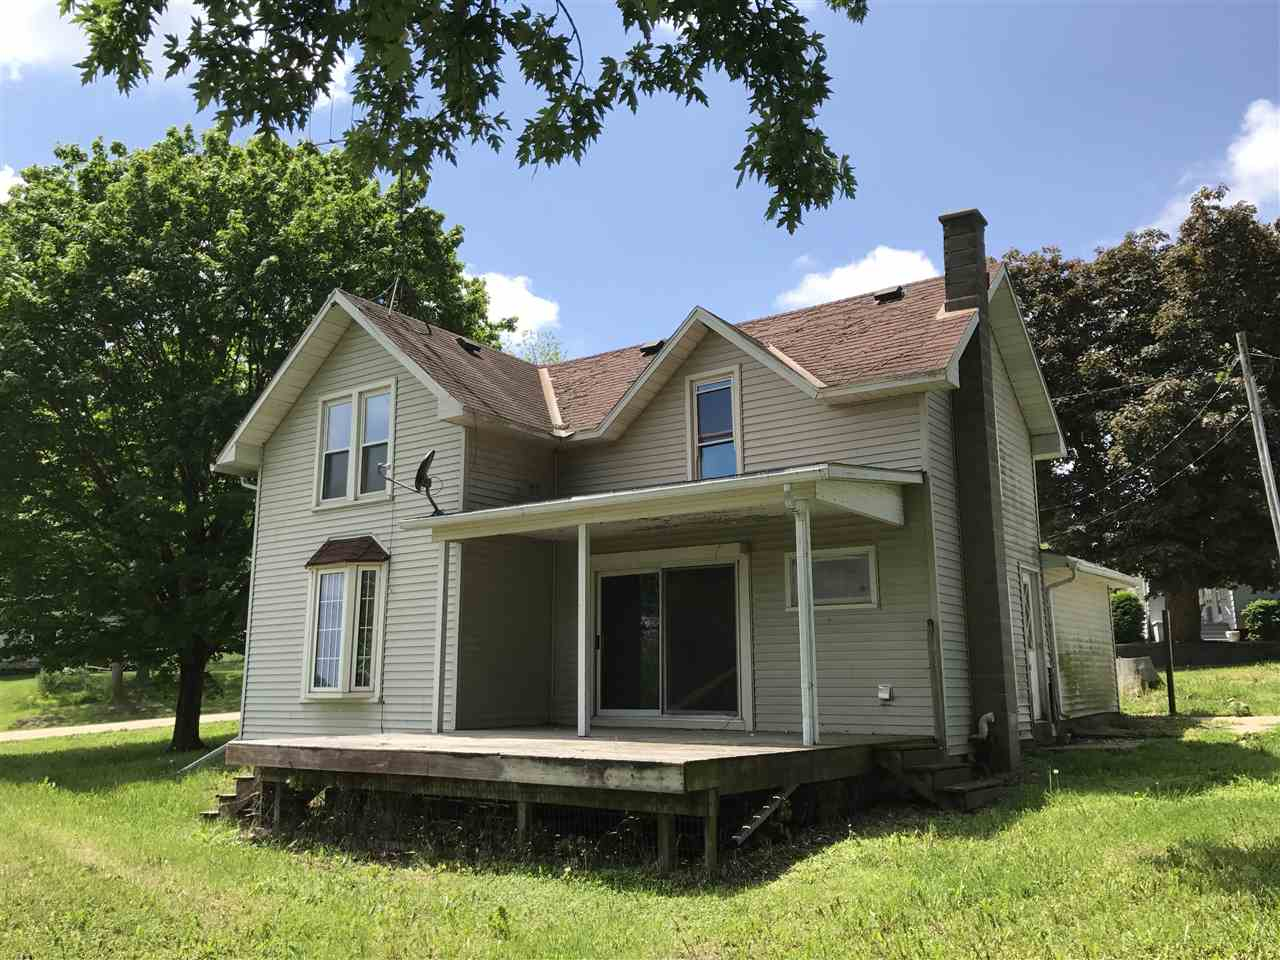 Located in the quiet town of Clarno just south of Monroe.  Enjoy the country views from the large covered front porch. 3bd plus big foyer area at upstairs landing, hardwood floors, 2car garage, big yard.  Per previous MLS, septic system was installed circa 2002.  1st time buyers, complete HomePath Ready Buyer course for up to 3% closing cost assistance. Restrictions apply.  Measurements approx; buyer to verify if important.